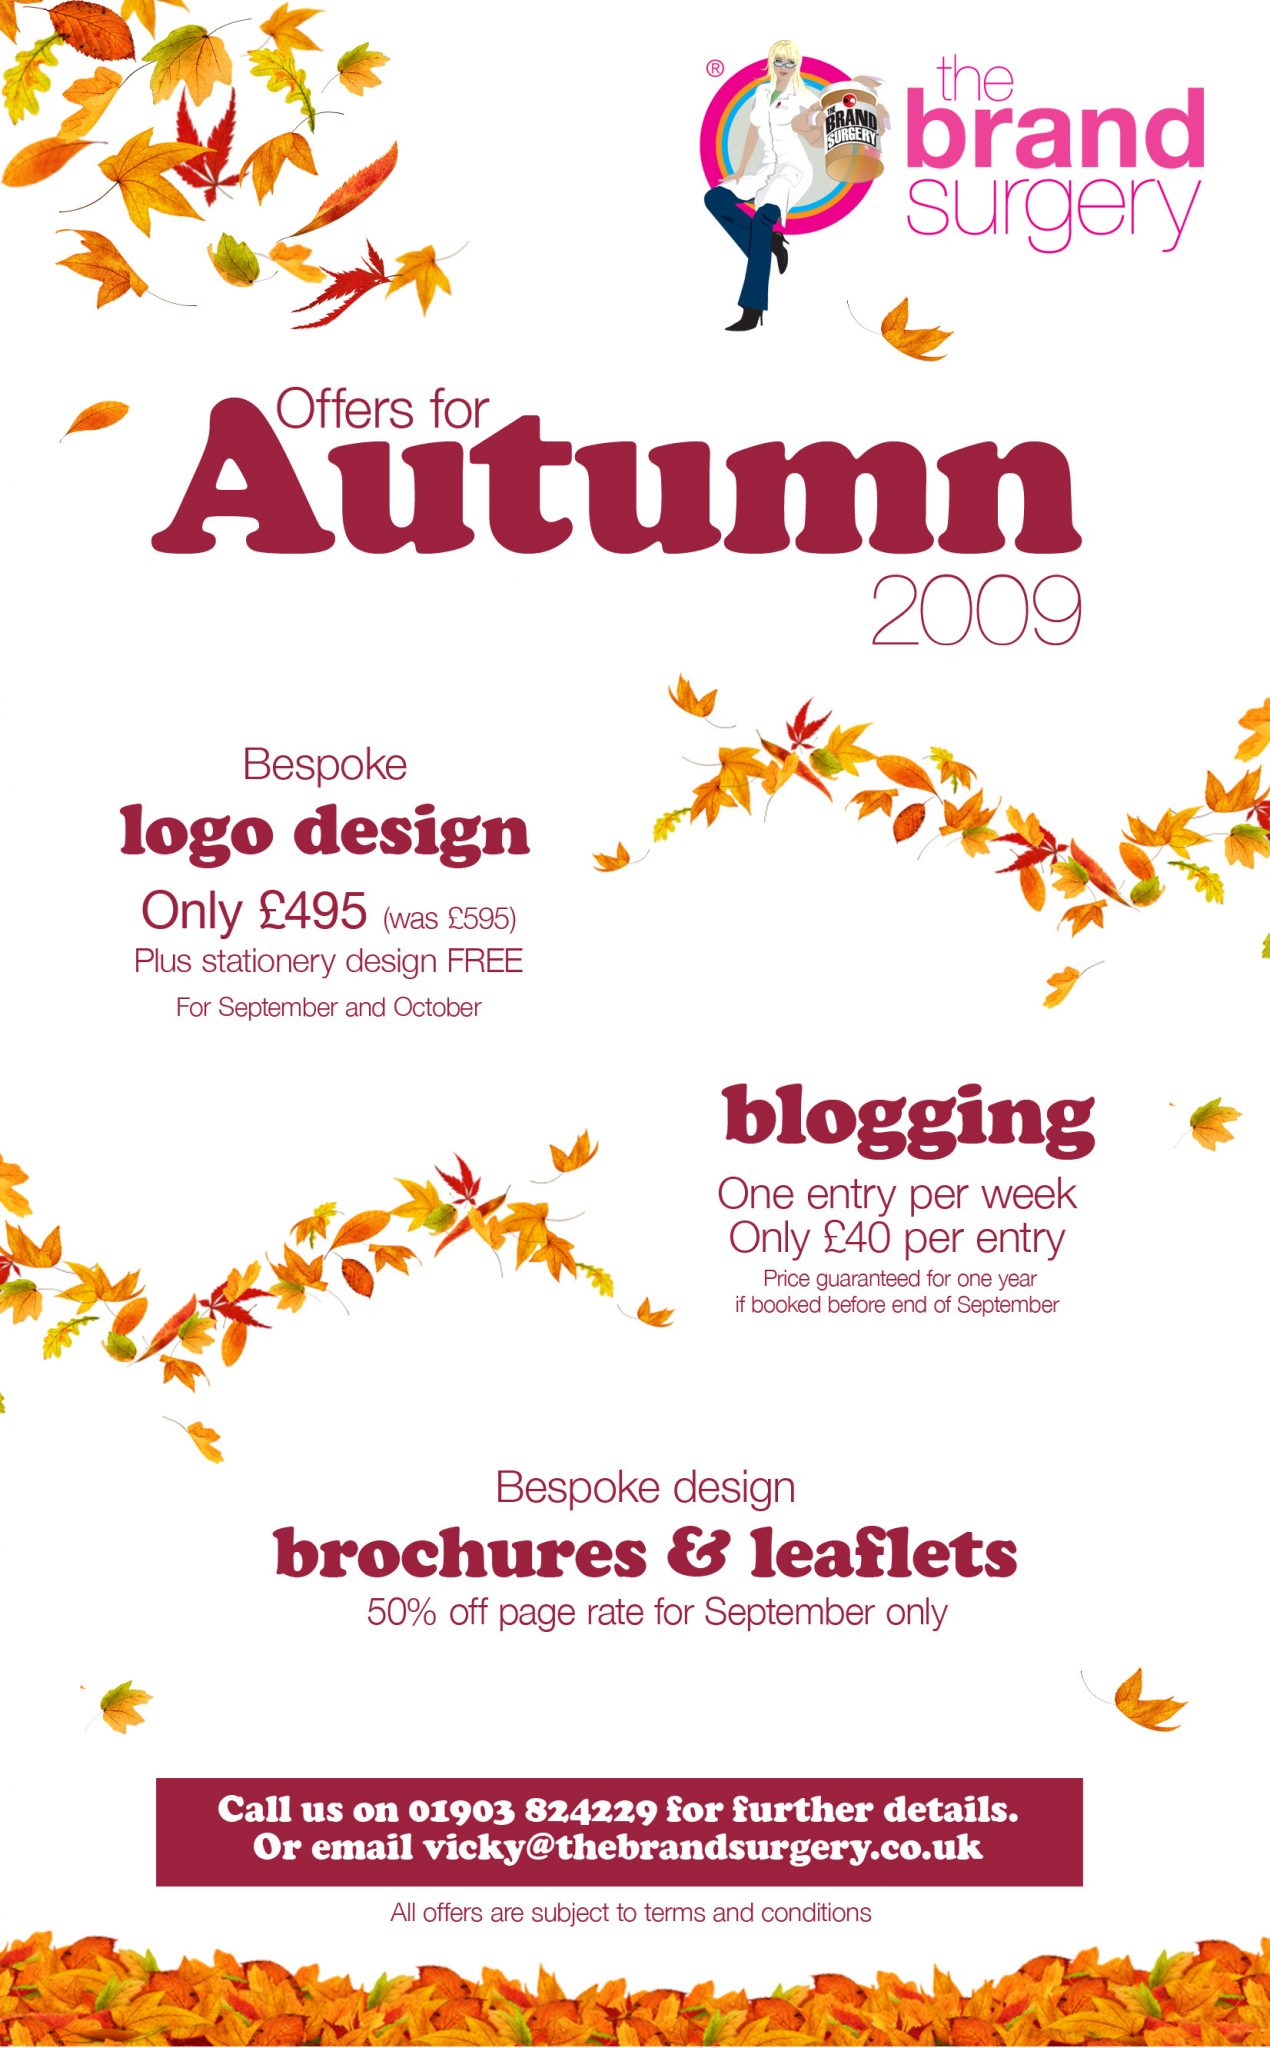 Autumn offers from The Brand Surgery